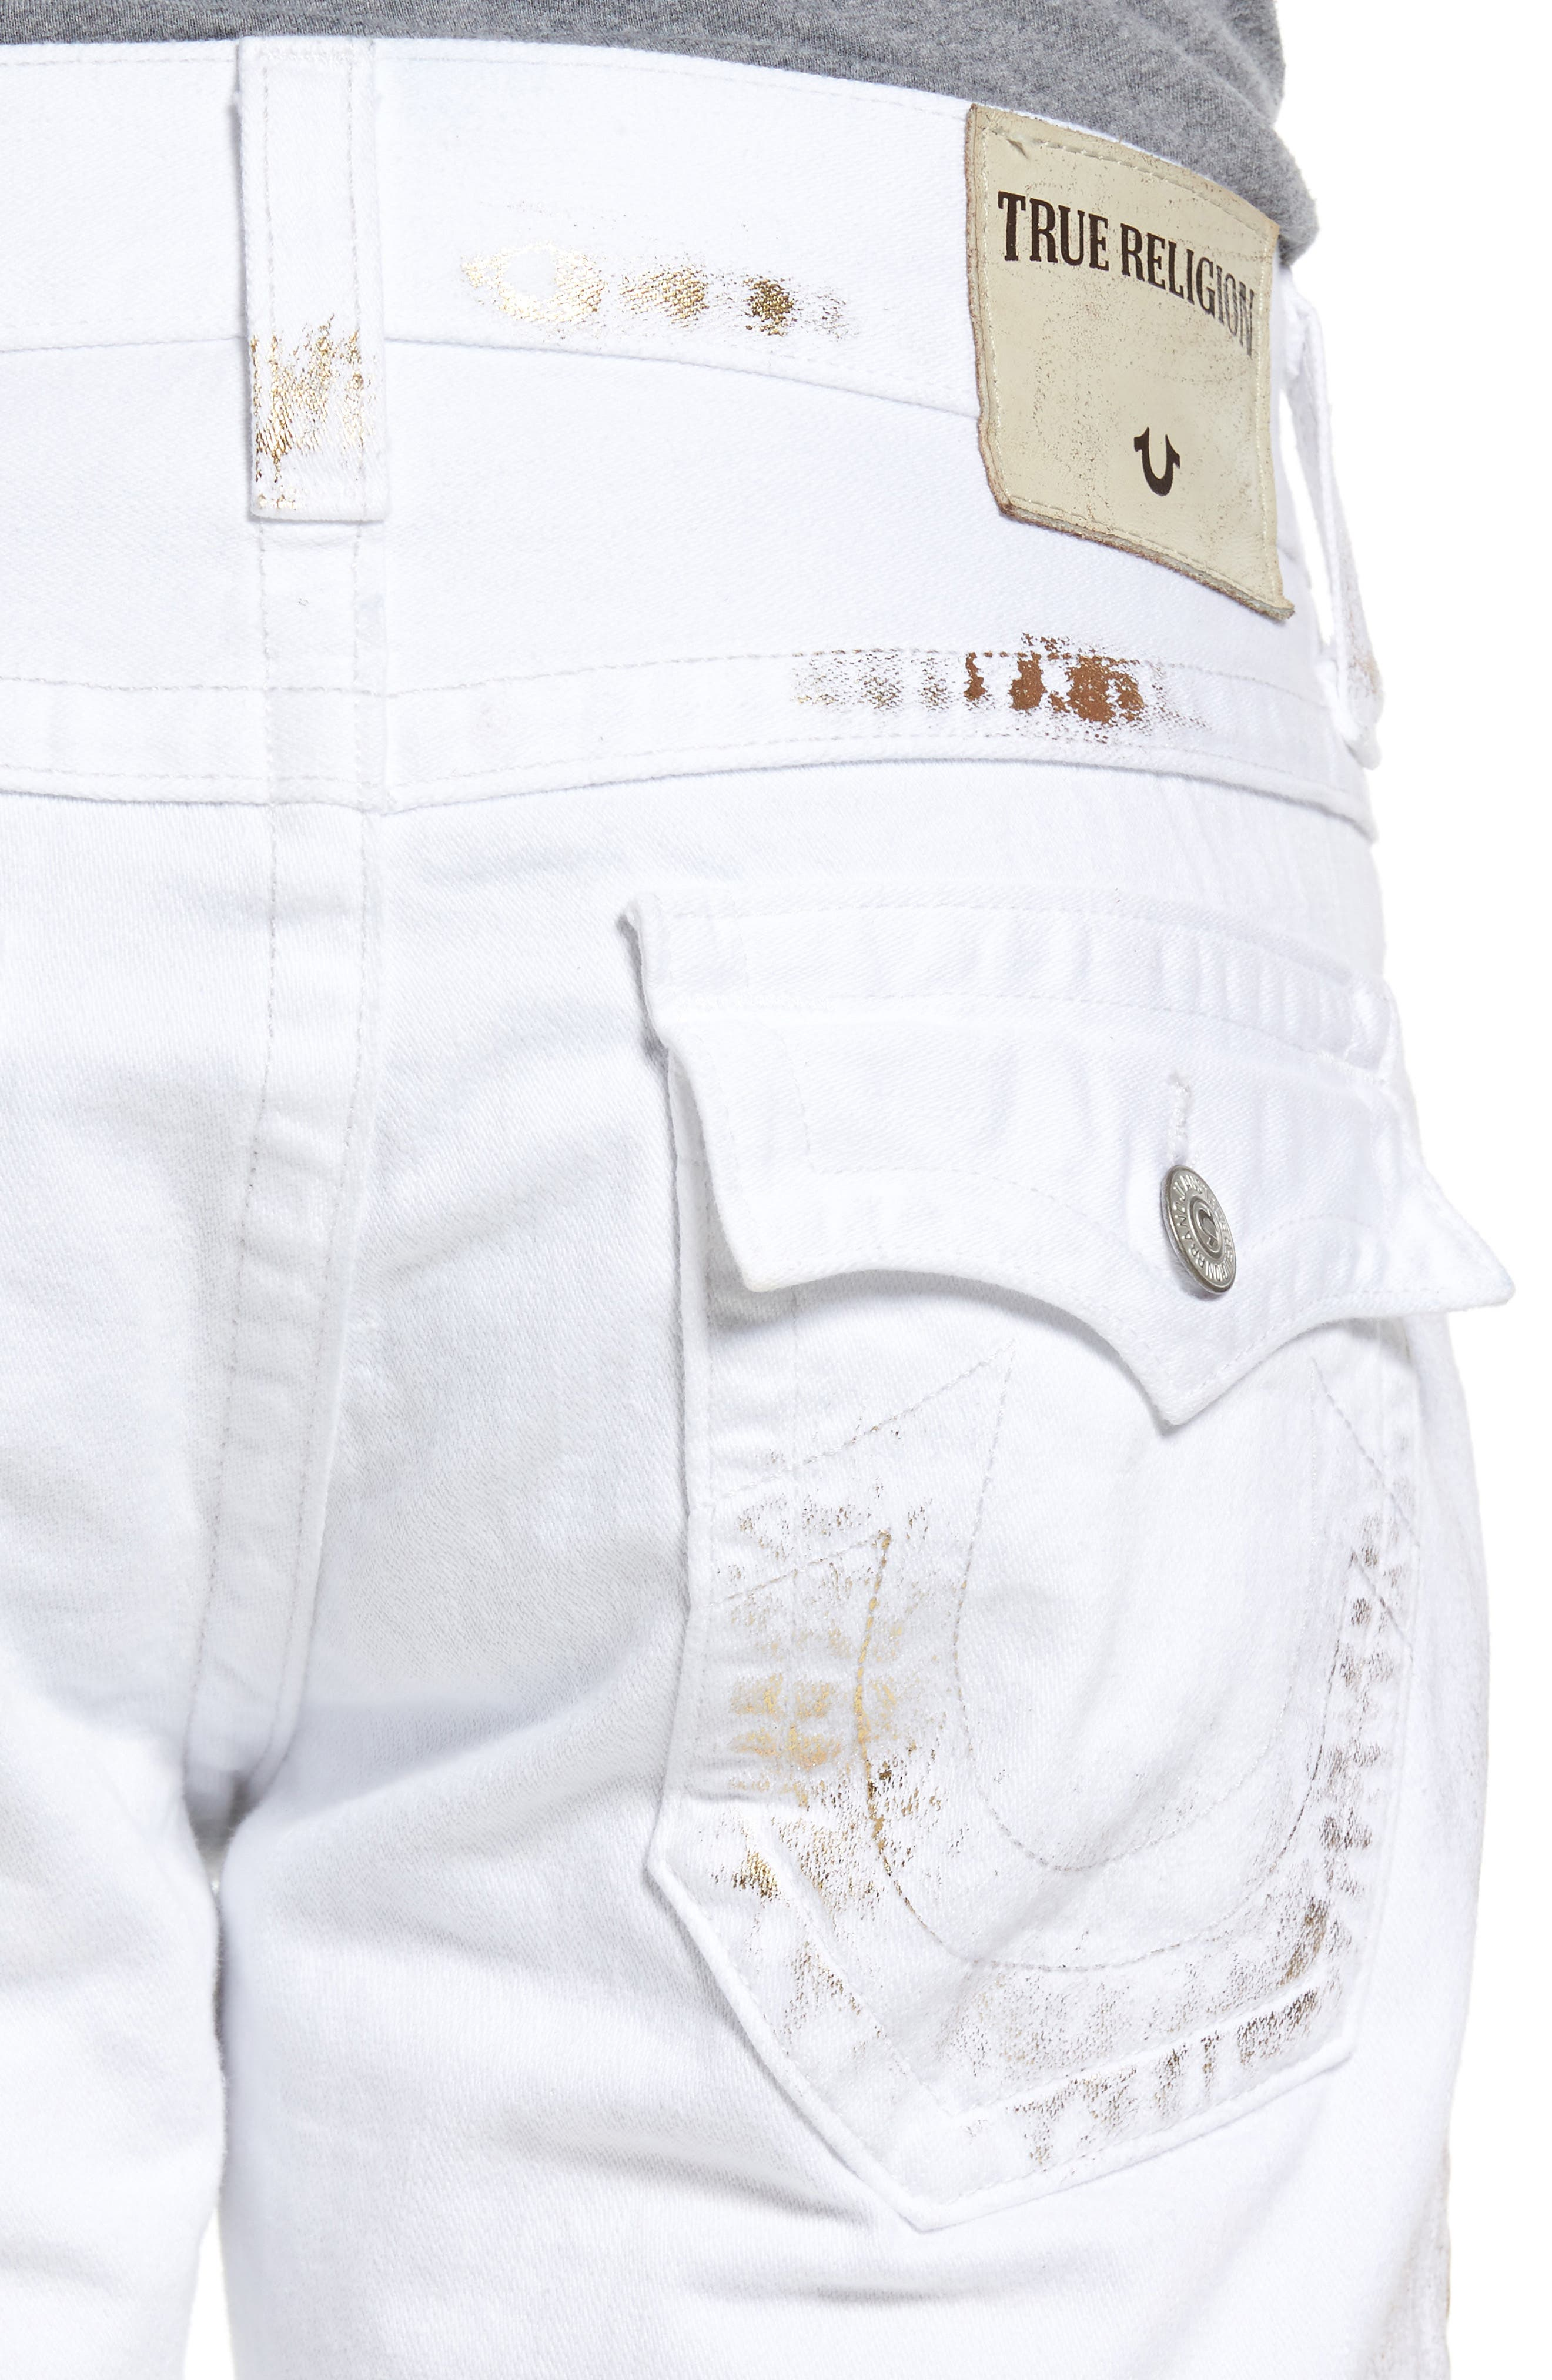 True Religion Brand Jeans Ricky Relaxed Fit Jeans (Optic Gold) With Paypal Cheap Price The Cheapest Online 31Yhz6yh